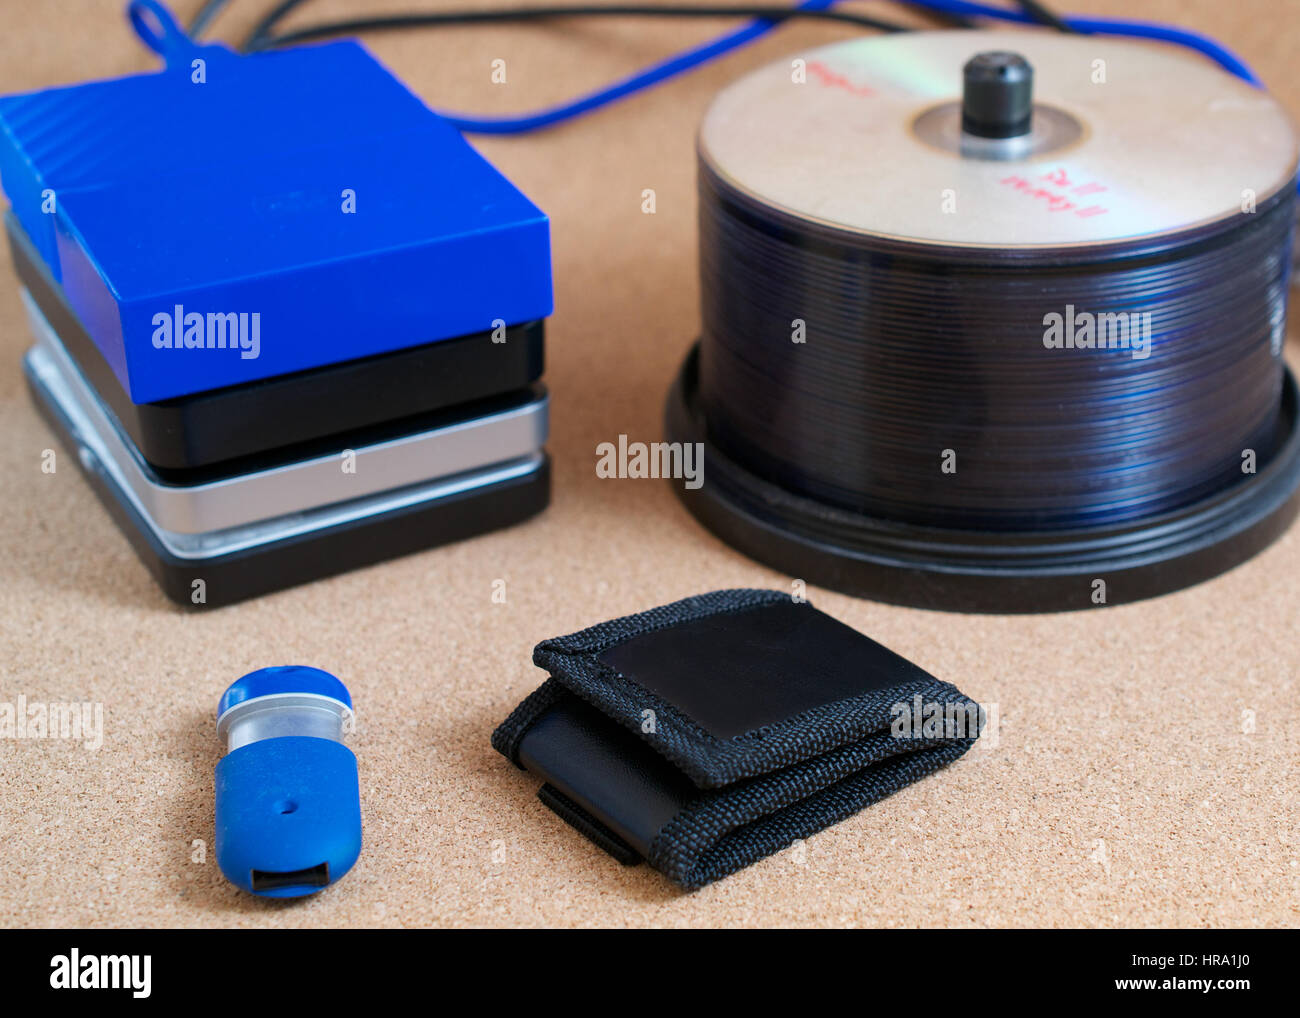 Digital data backup devices: external USB hard drives, memory stick, memory card wallet and CDs on cork background - Stock Image